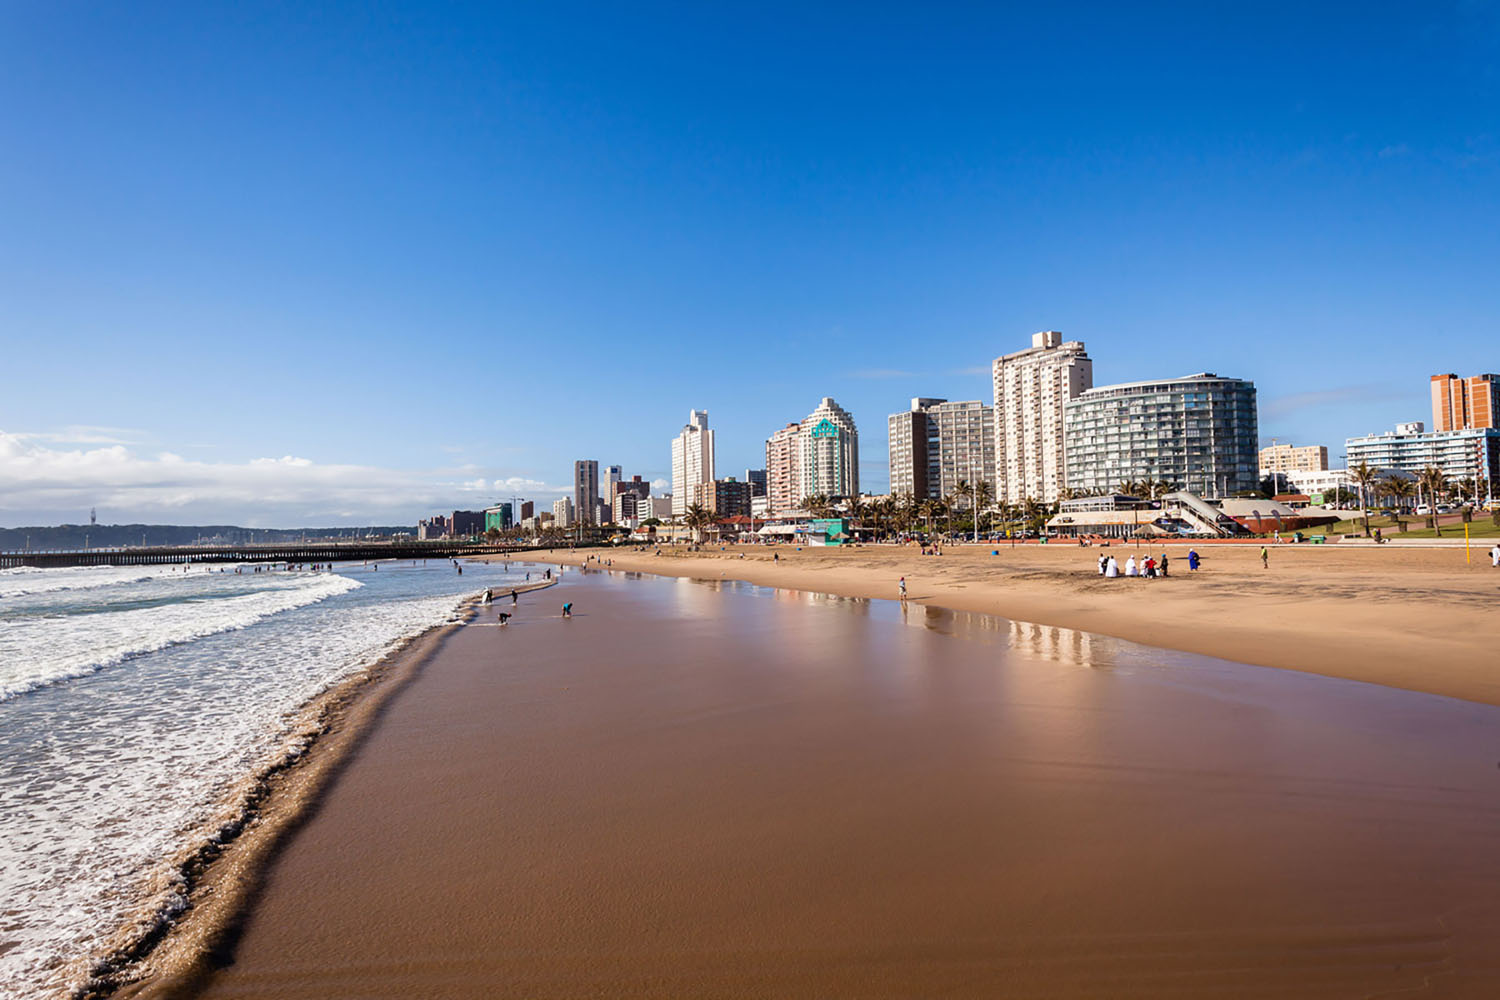 The beach and skyline in Durban, South Africa.